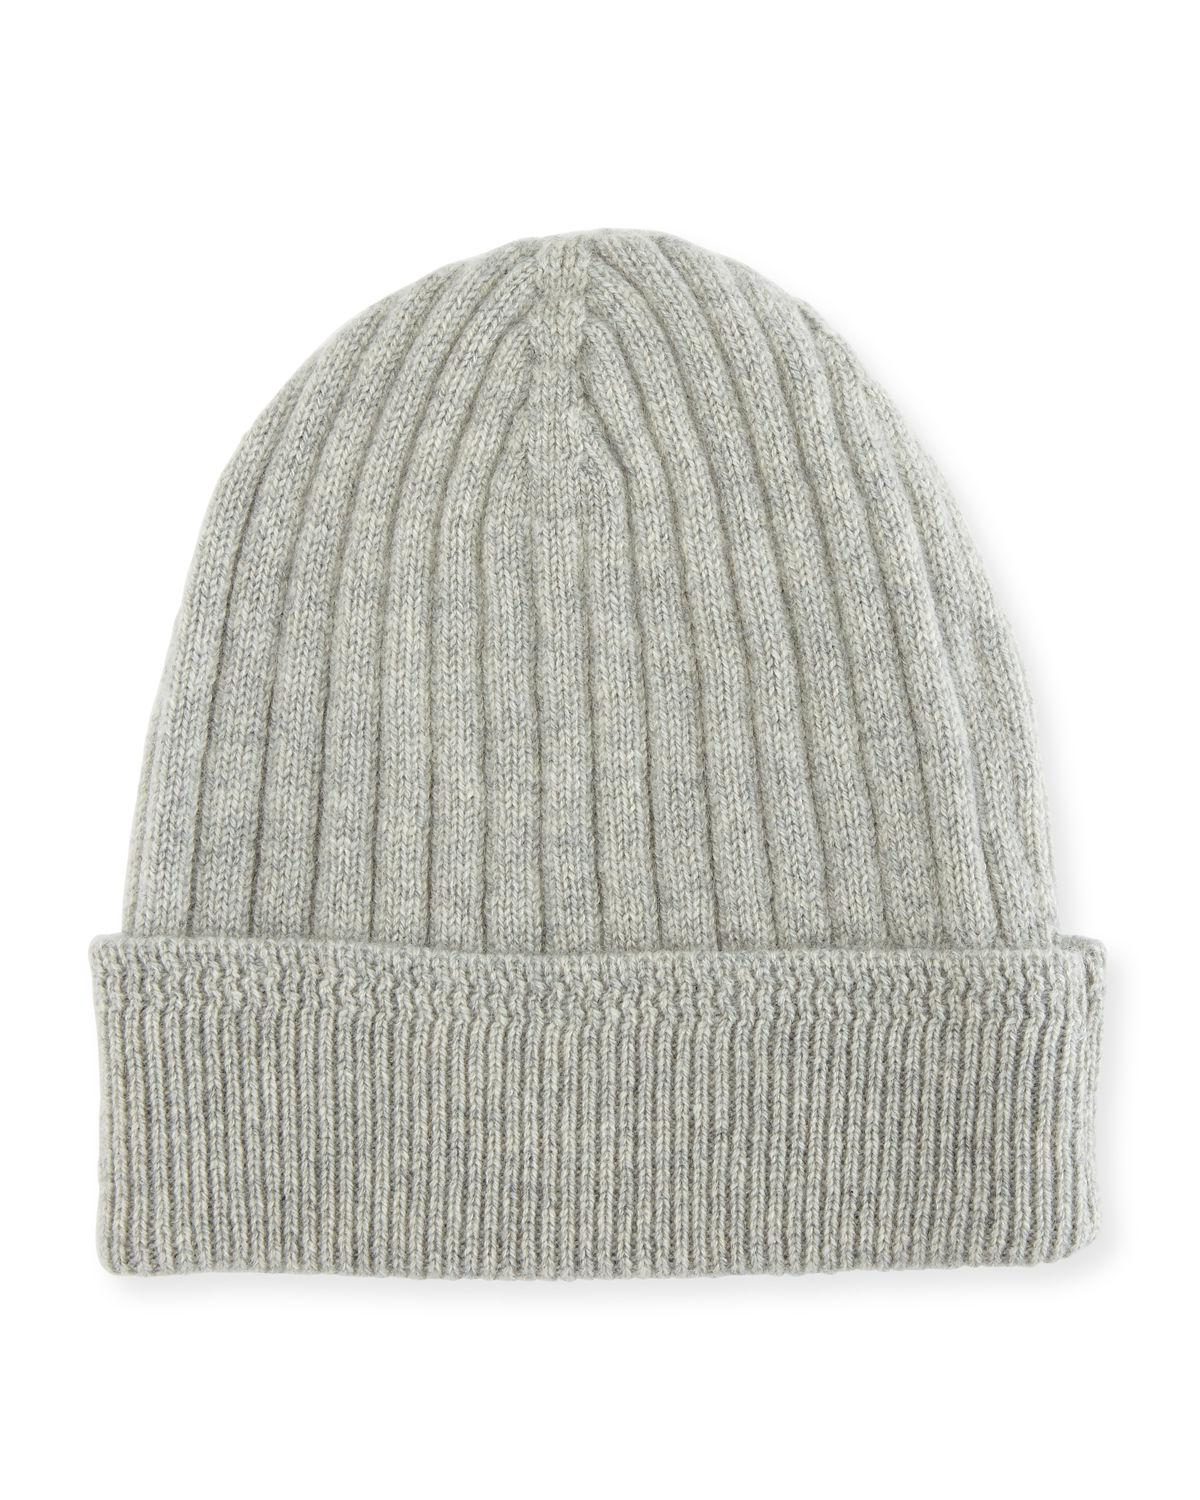 d3504123715 Lyst - Tom Ford Cashmere Ribbed Hat in Gray for Men